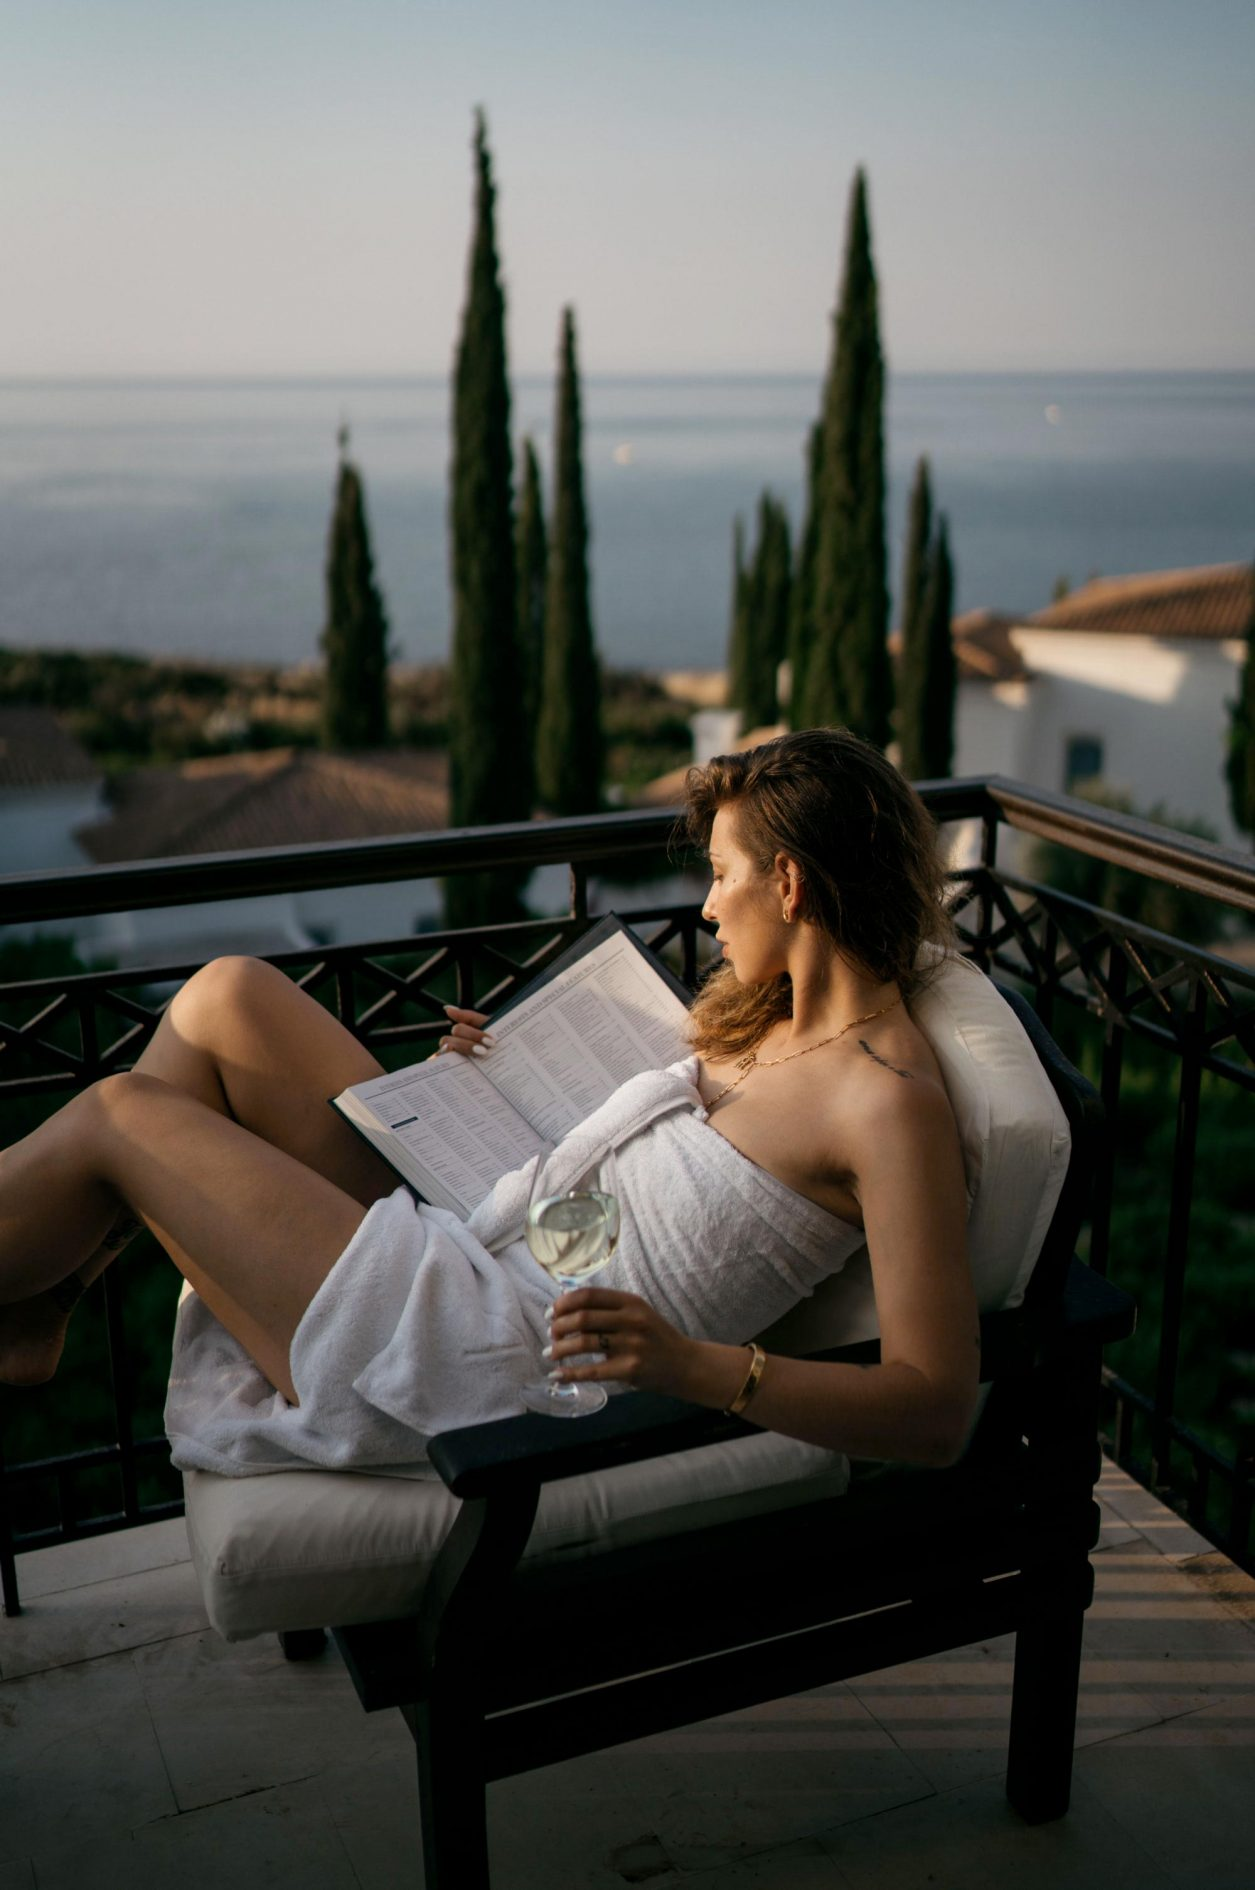 Anassa Resort - Luxury Spa Hotel in Cyprus, Greece. Balcony view, woman reading book and drinking wine